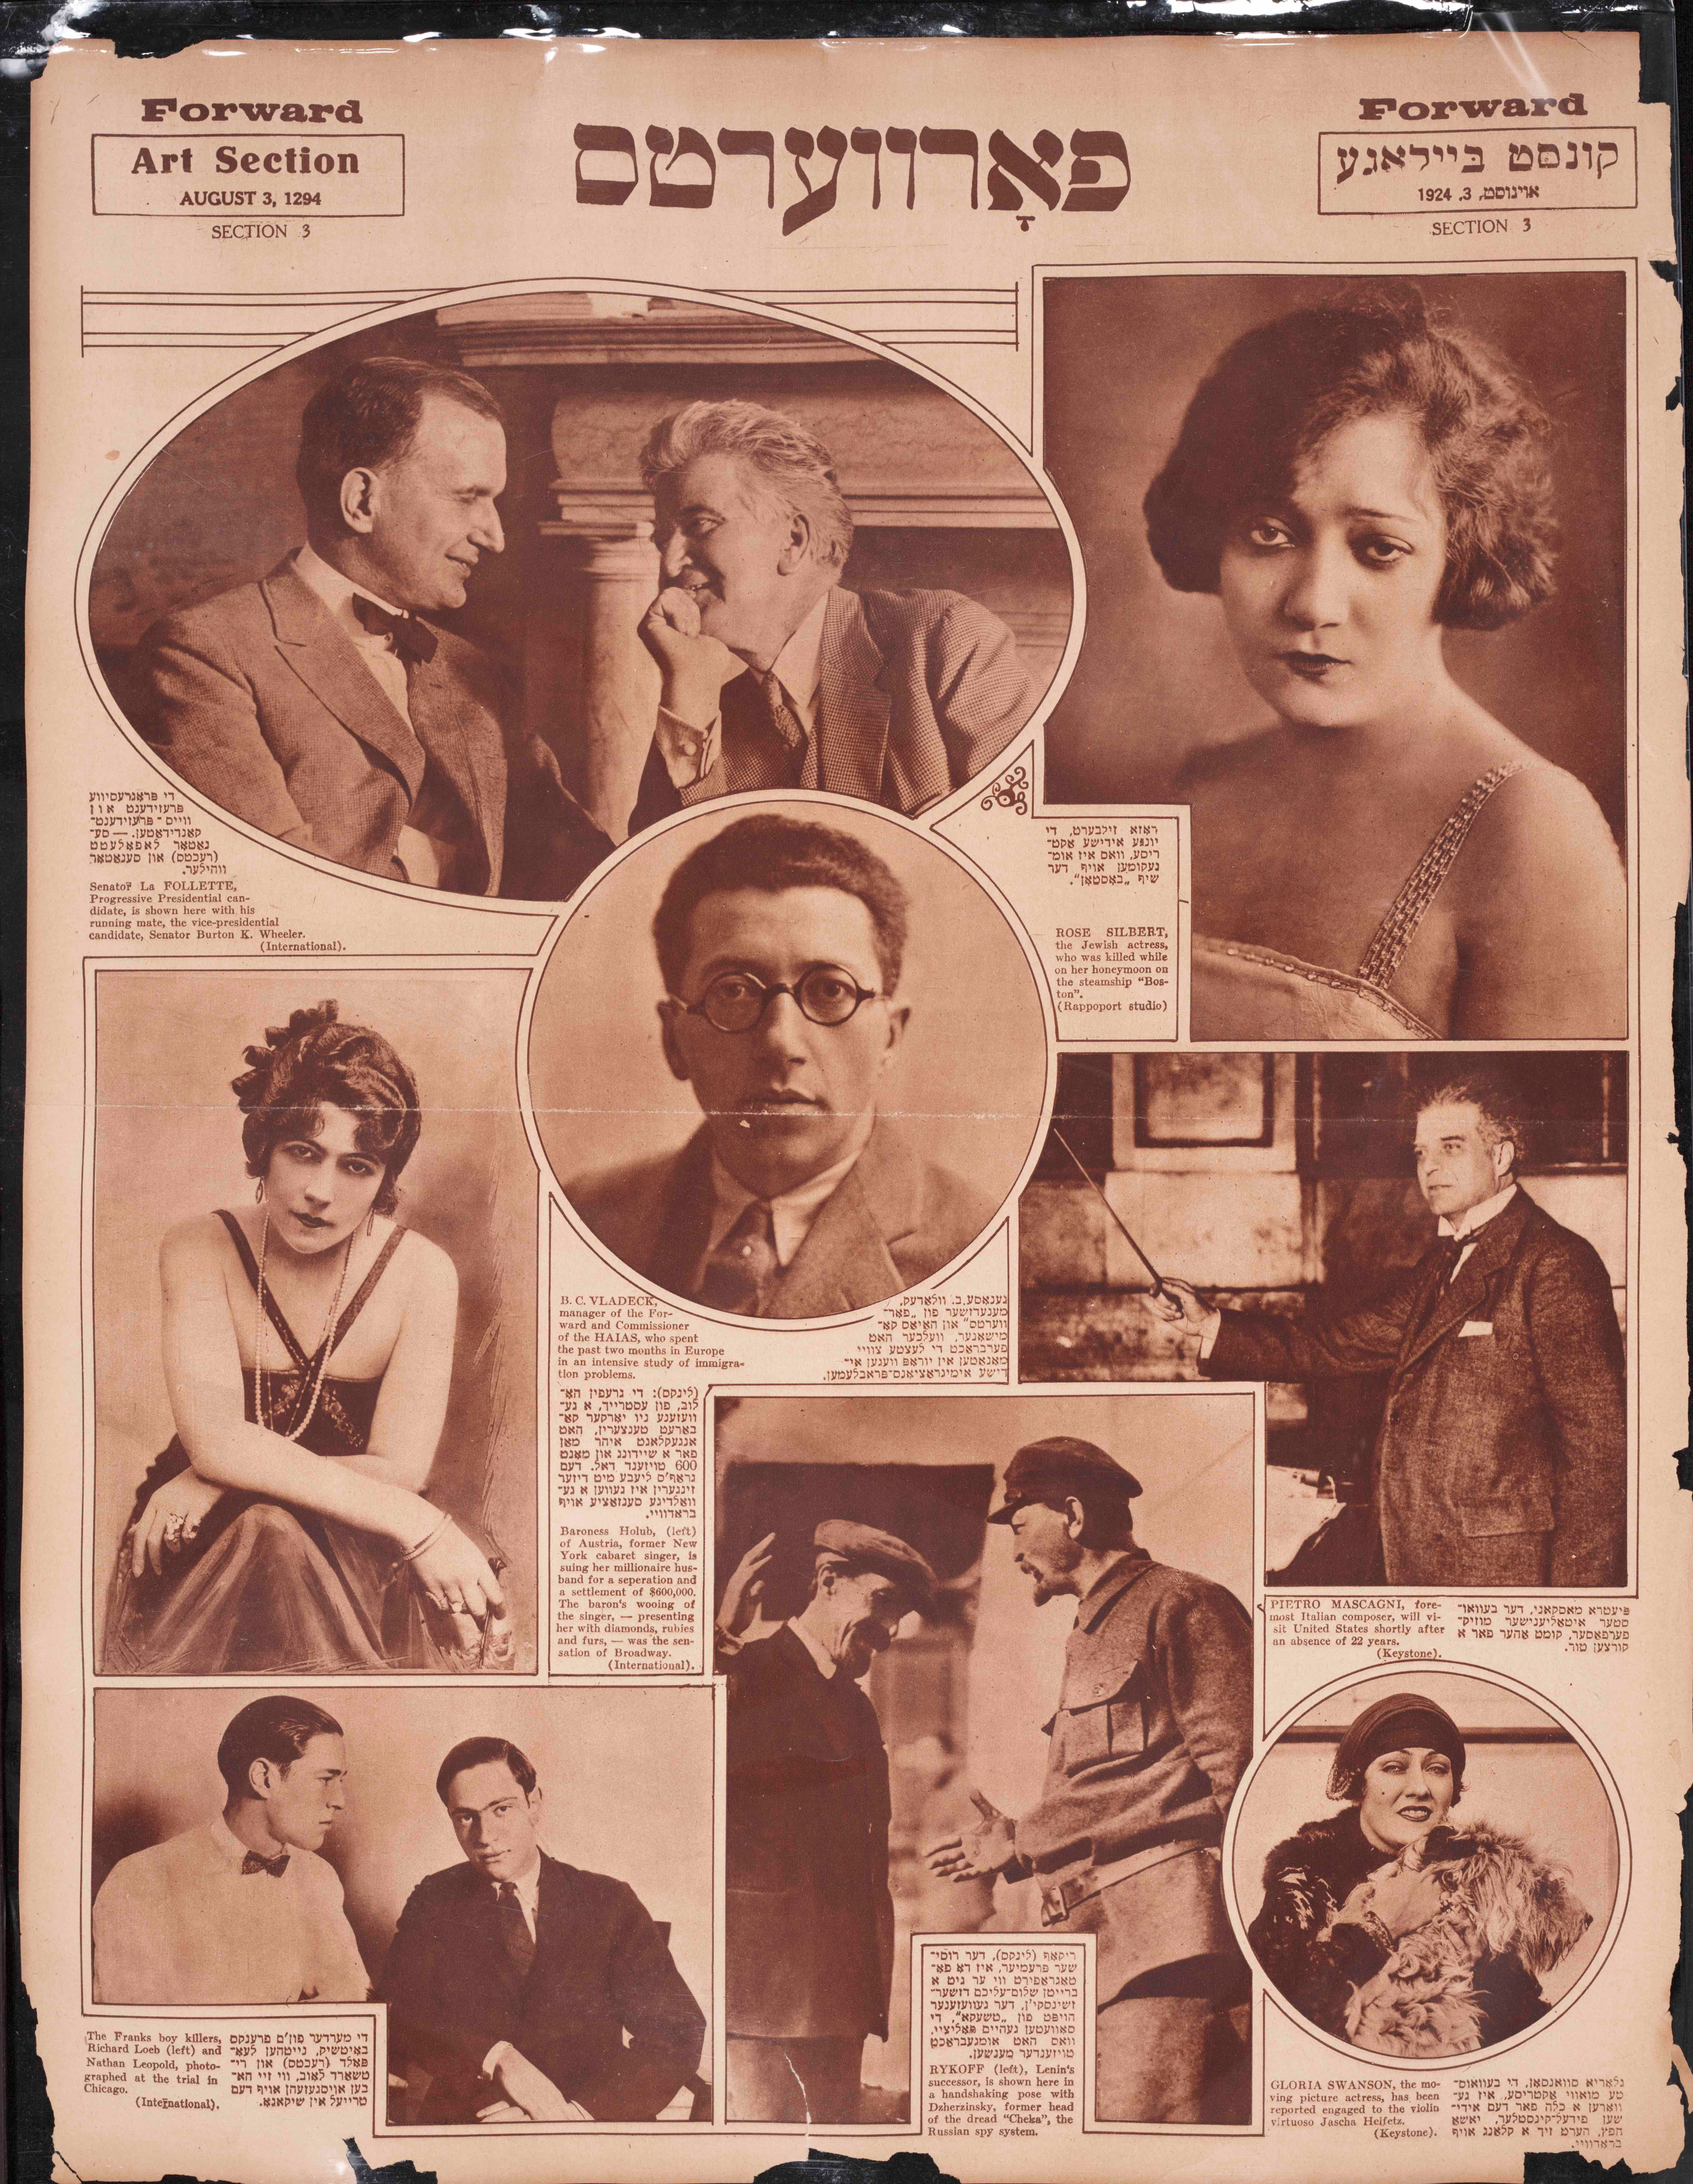 Senators, Steamships, Gloria Swanson and So Much More: The cover of the August 3, 1924, Art Section provides a glimpse of the American Jewish life covered by the Forverts.